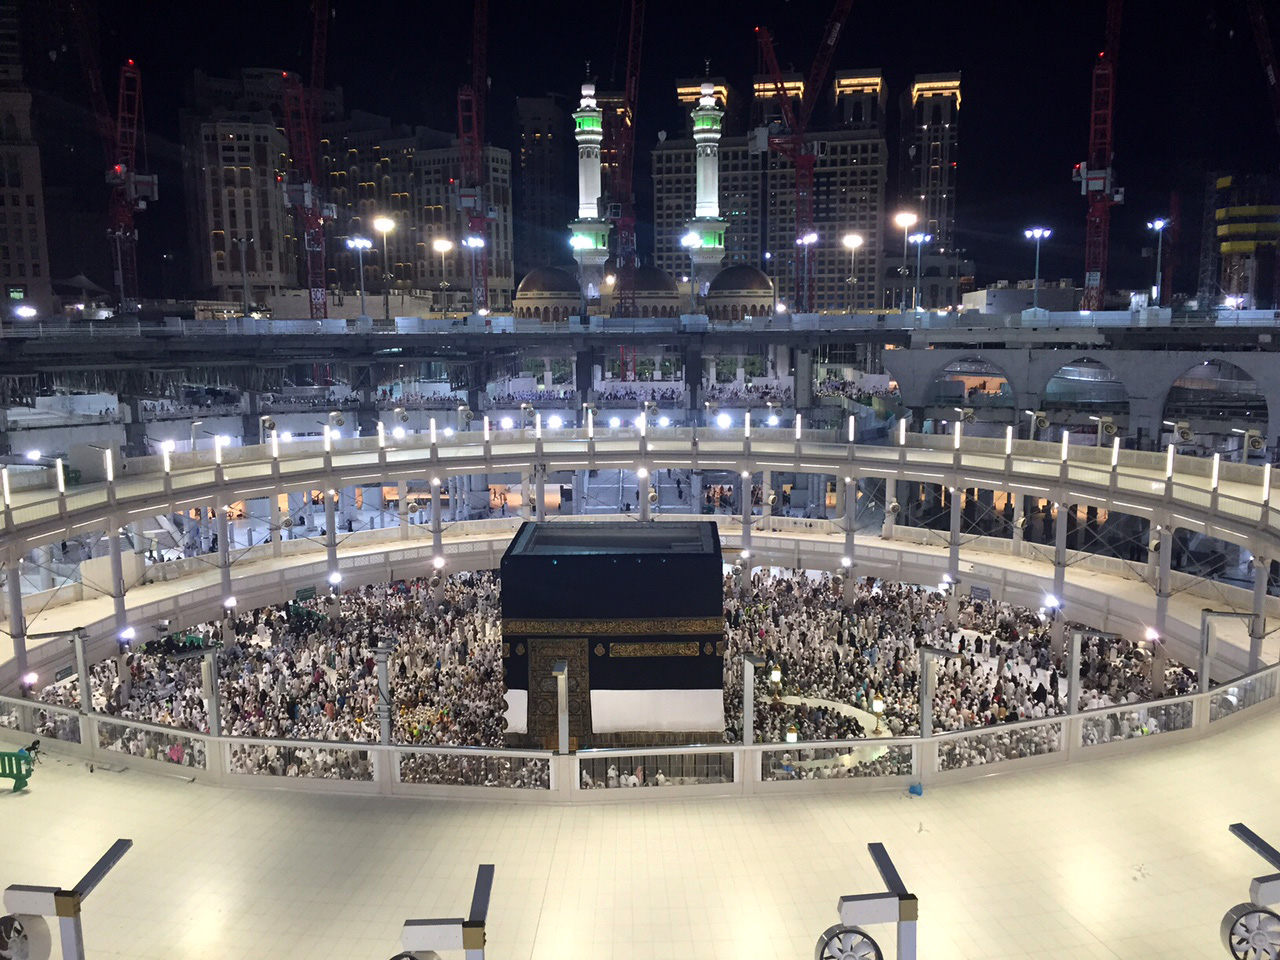 Muslim pilgrims walk around around the Kaaba, the cubic building at the Grand Mosque in the Muslim holy city of Mecca, Saudi Arabia, early Saturday morning, Sept. 12, 2015.  A towering construction crane toppled over on Friday during a violent rainstorm in the Saudi city of Mecca, Islam's holiest site, crashing into the Grand Mosque and killing over a hundred people, ahead of the start of the annual hajj pilgrimage later this month. photo: APn